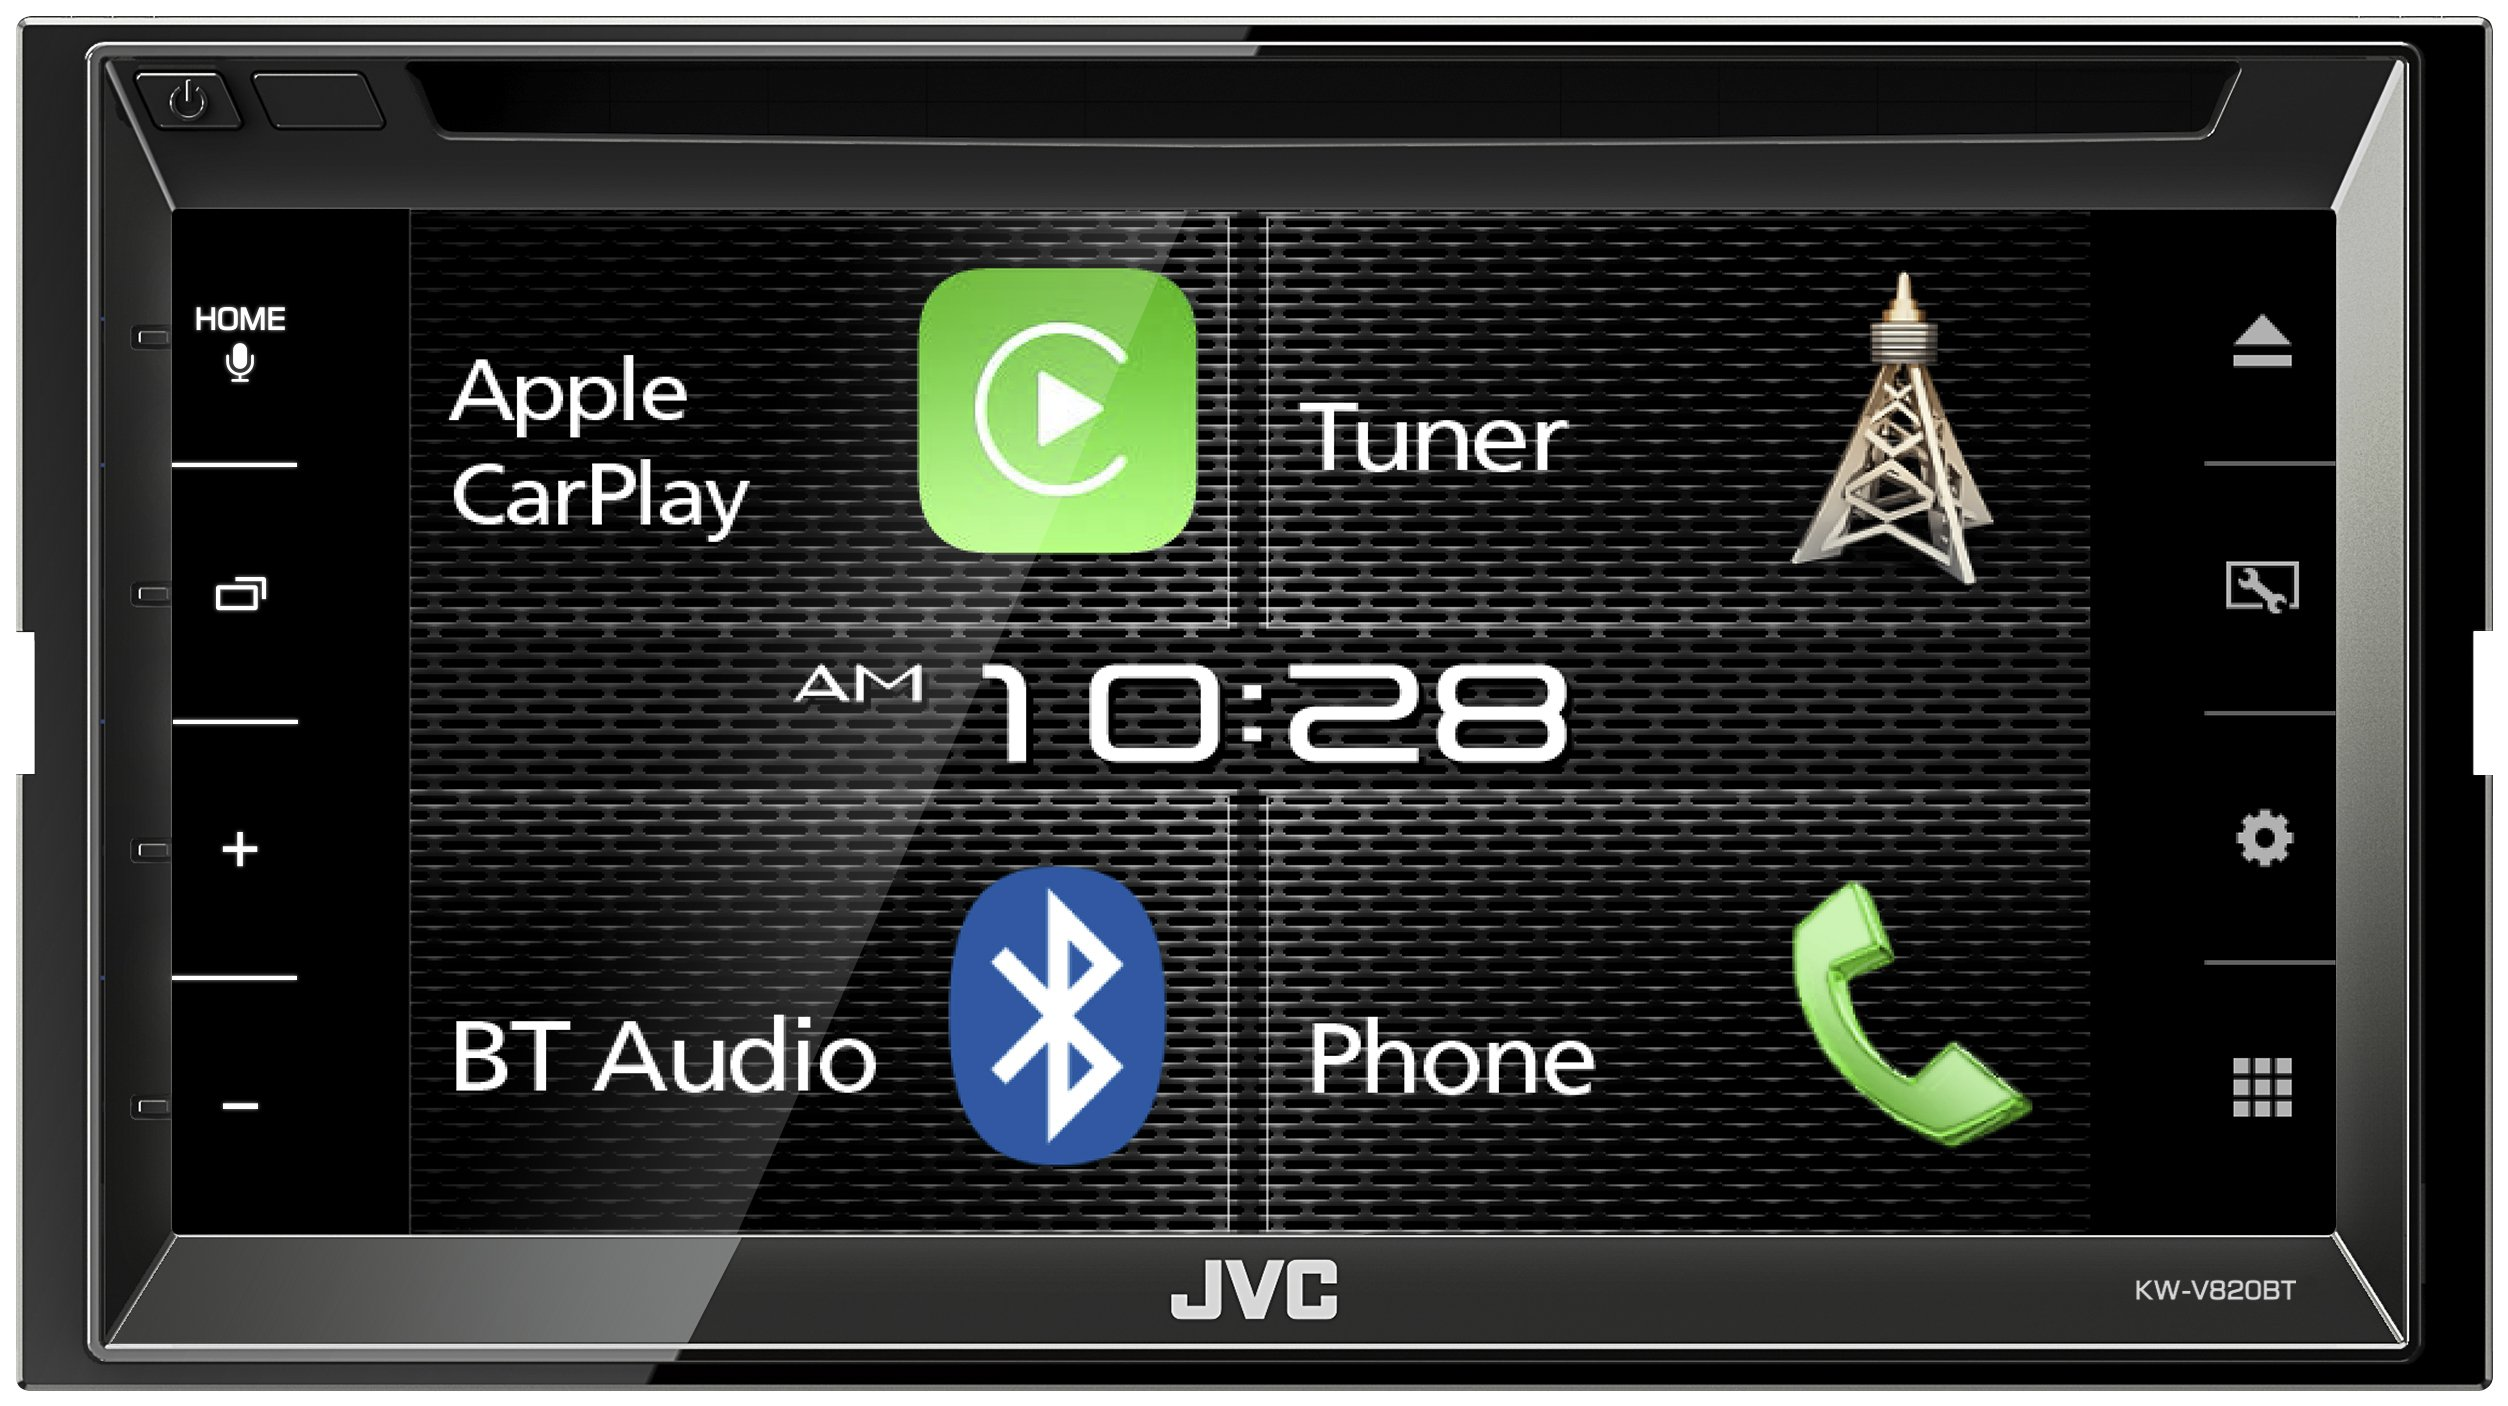 JVC-KW-V820BT-DVD-CD-USB-Receiver-mit-173-cm-Hochglanz-Touch-Panel-und-Bluetooth-Audiostreaming-schwarz